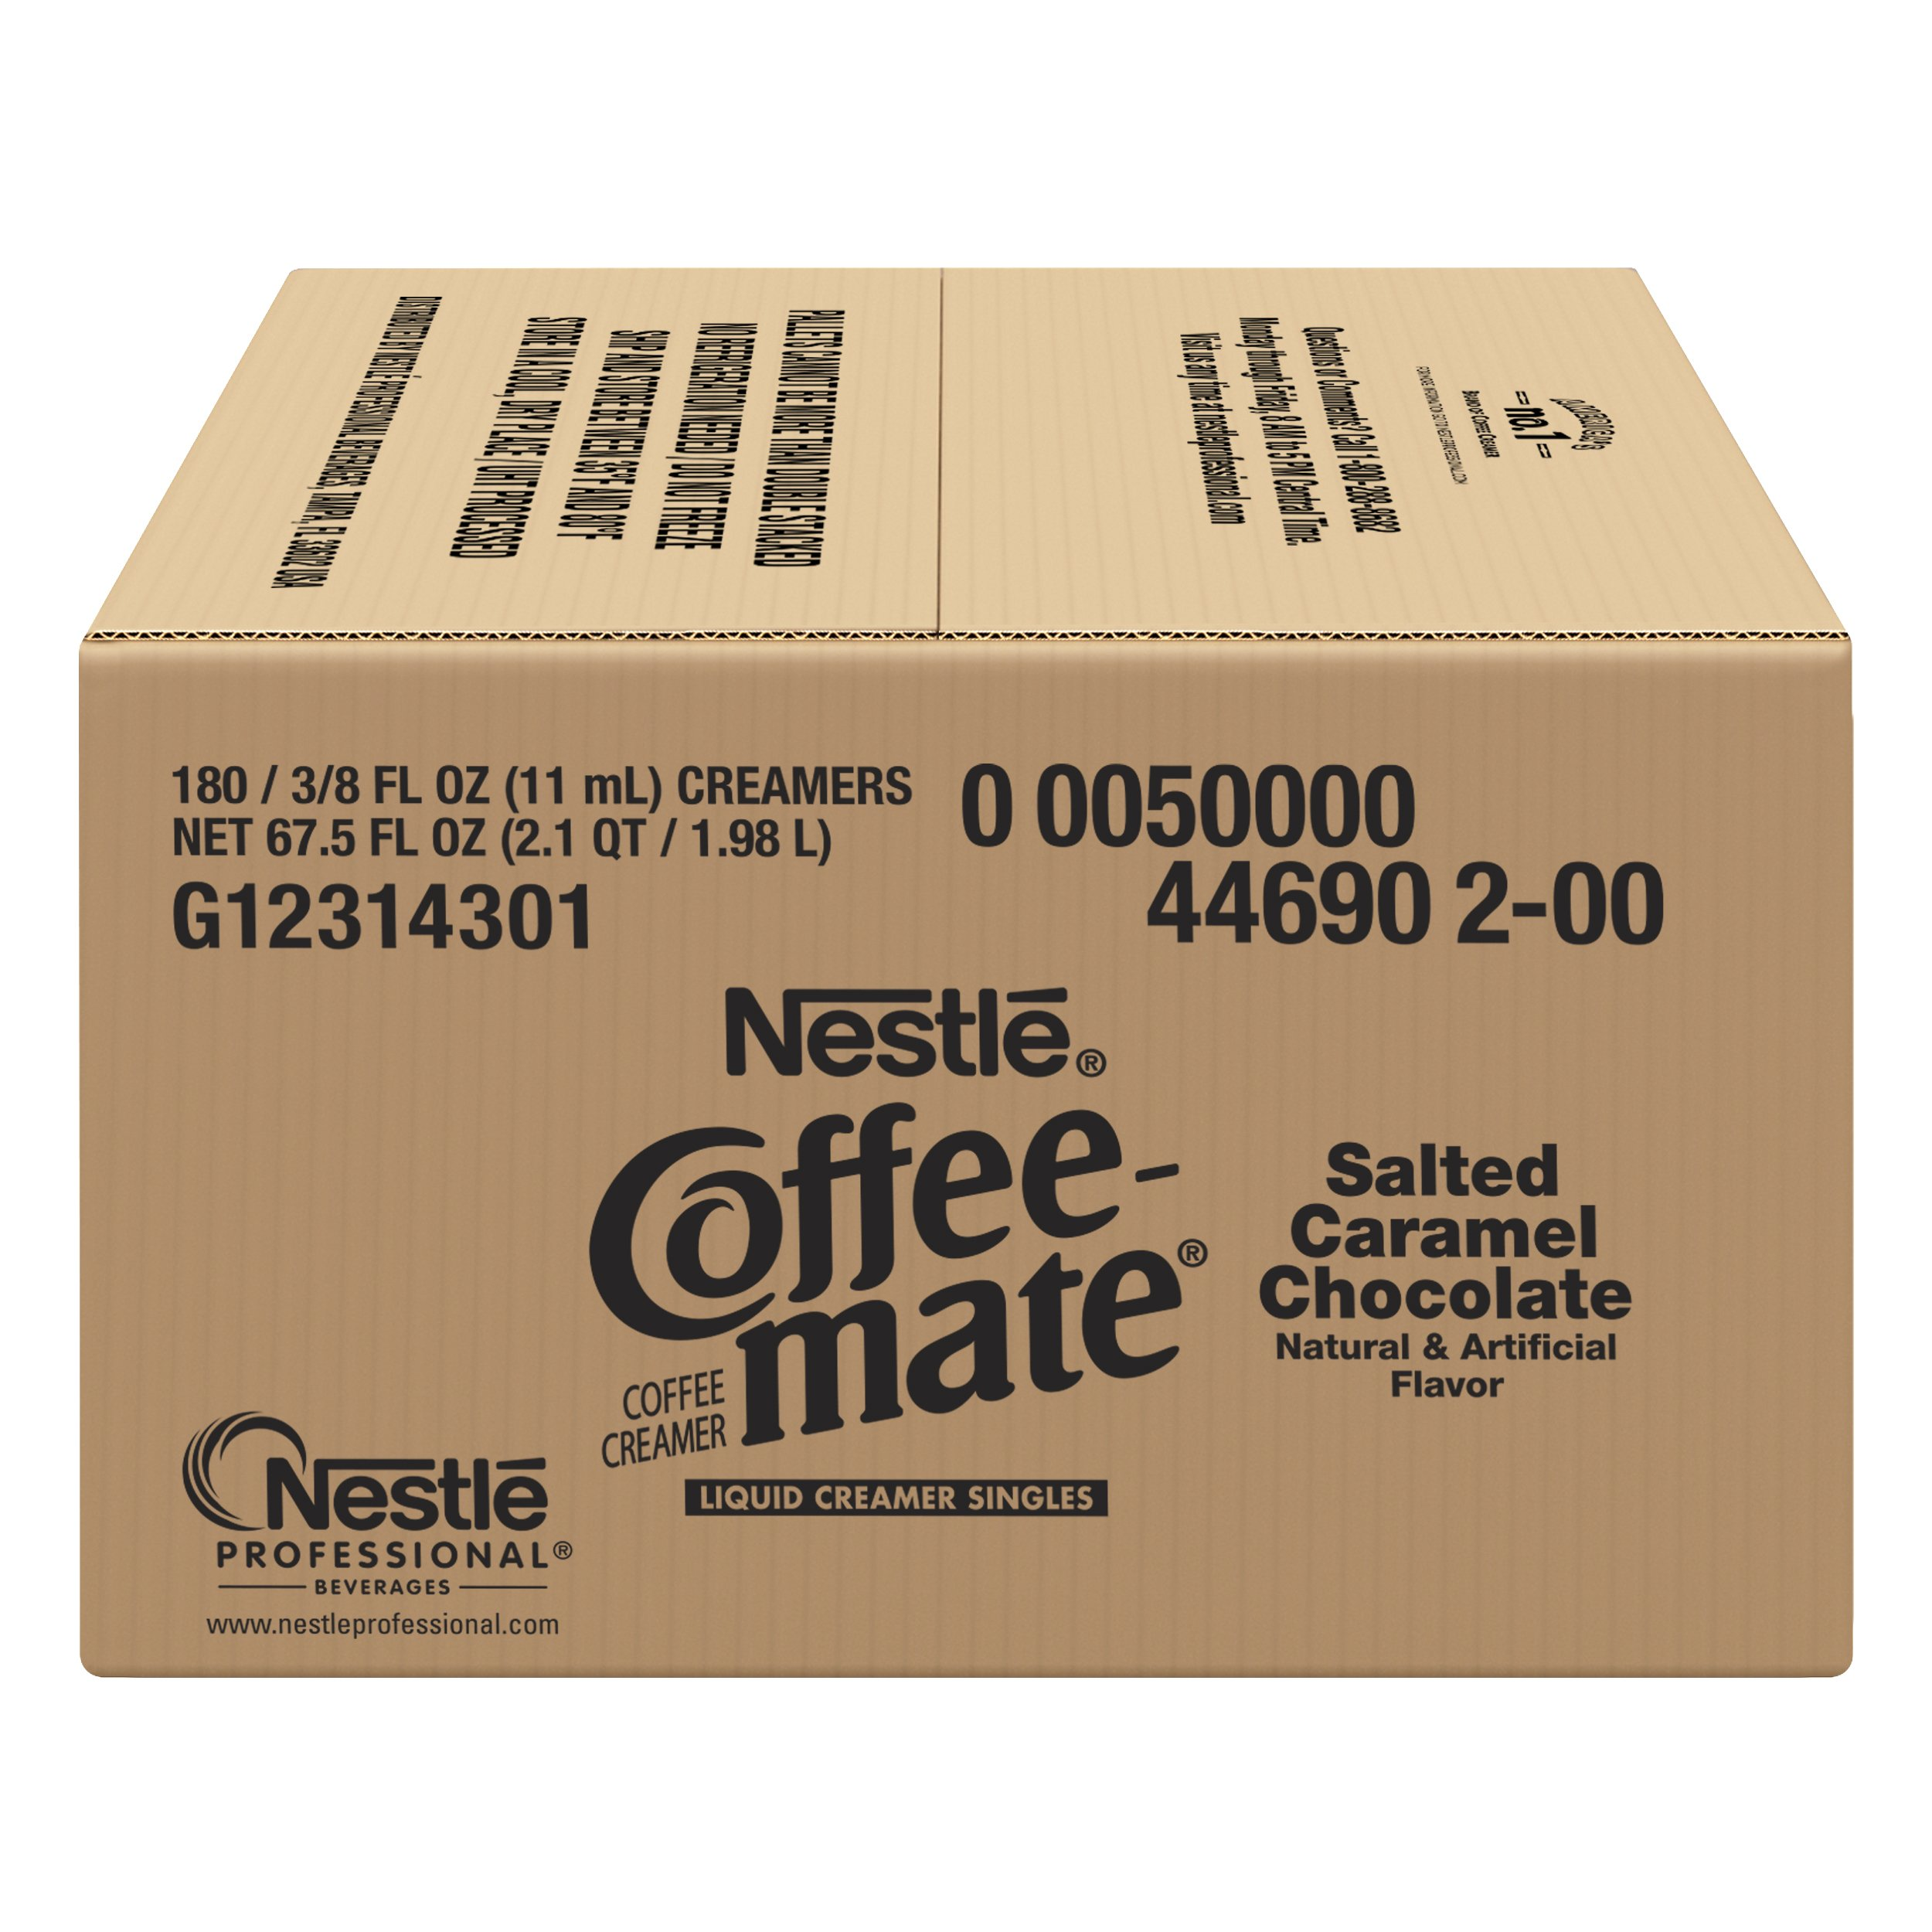 Nestle Coffee-mate Coffee Creamer, Salted Caramel Chocolate, liquid creamer singles, 180 Count (Pack of 1) by Nestle Coffee Mate (Image #4)